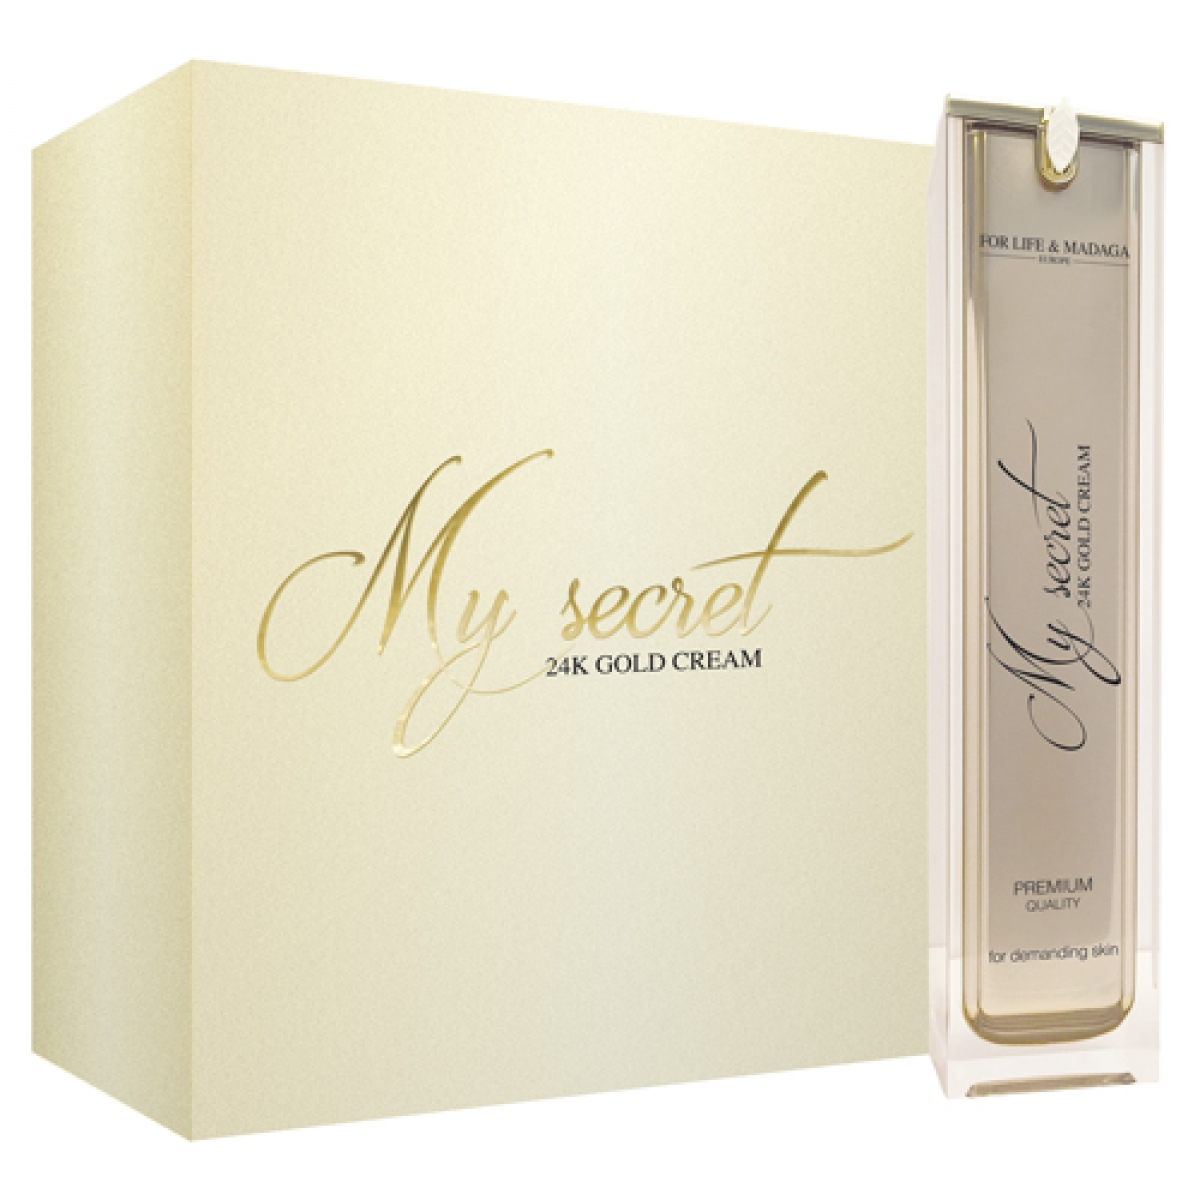 FOR LIFE & MADAGA: My secret 24K GOLD CREAM & 24K GOLD ELIXIR